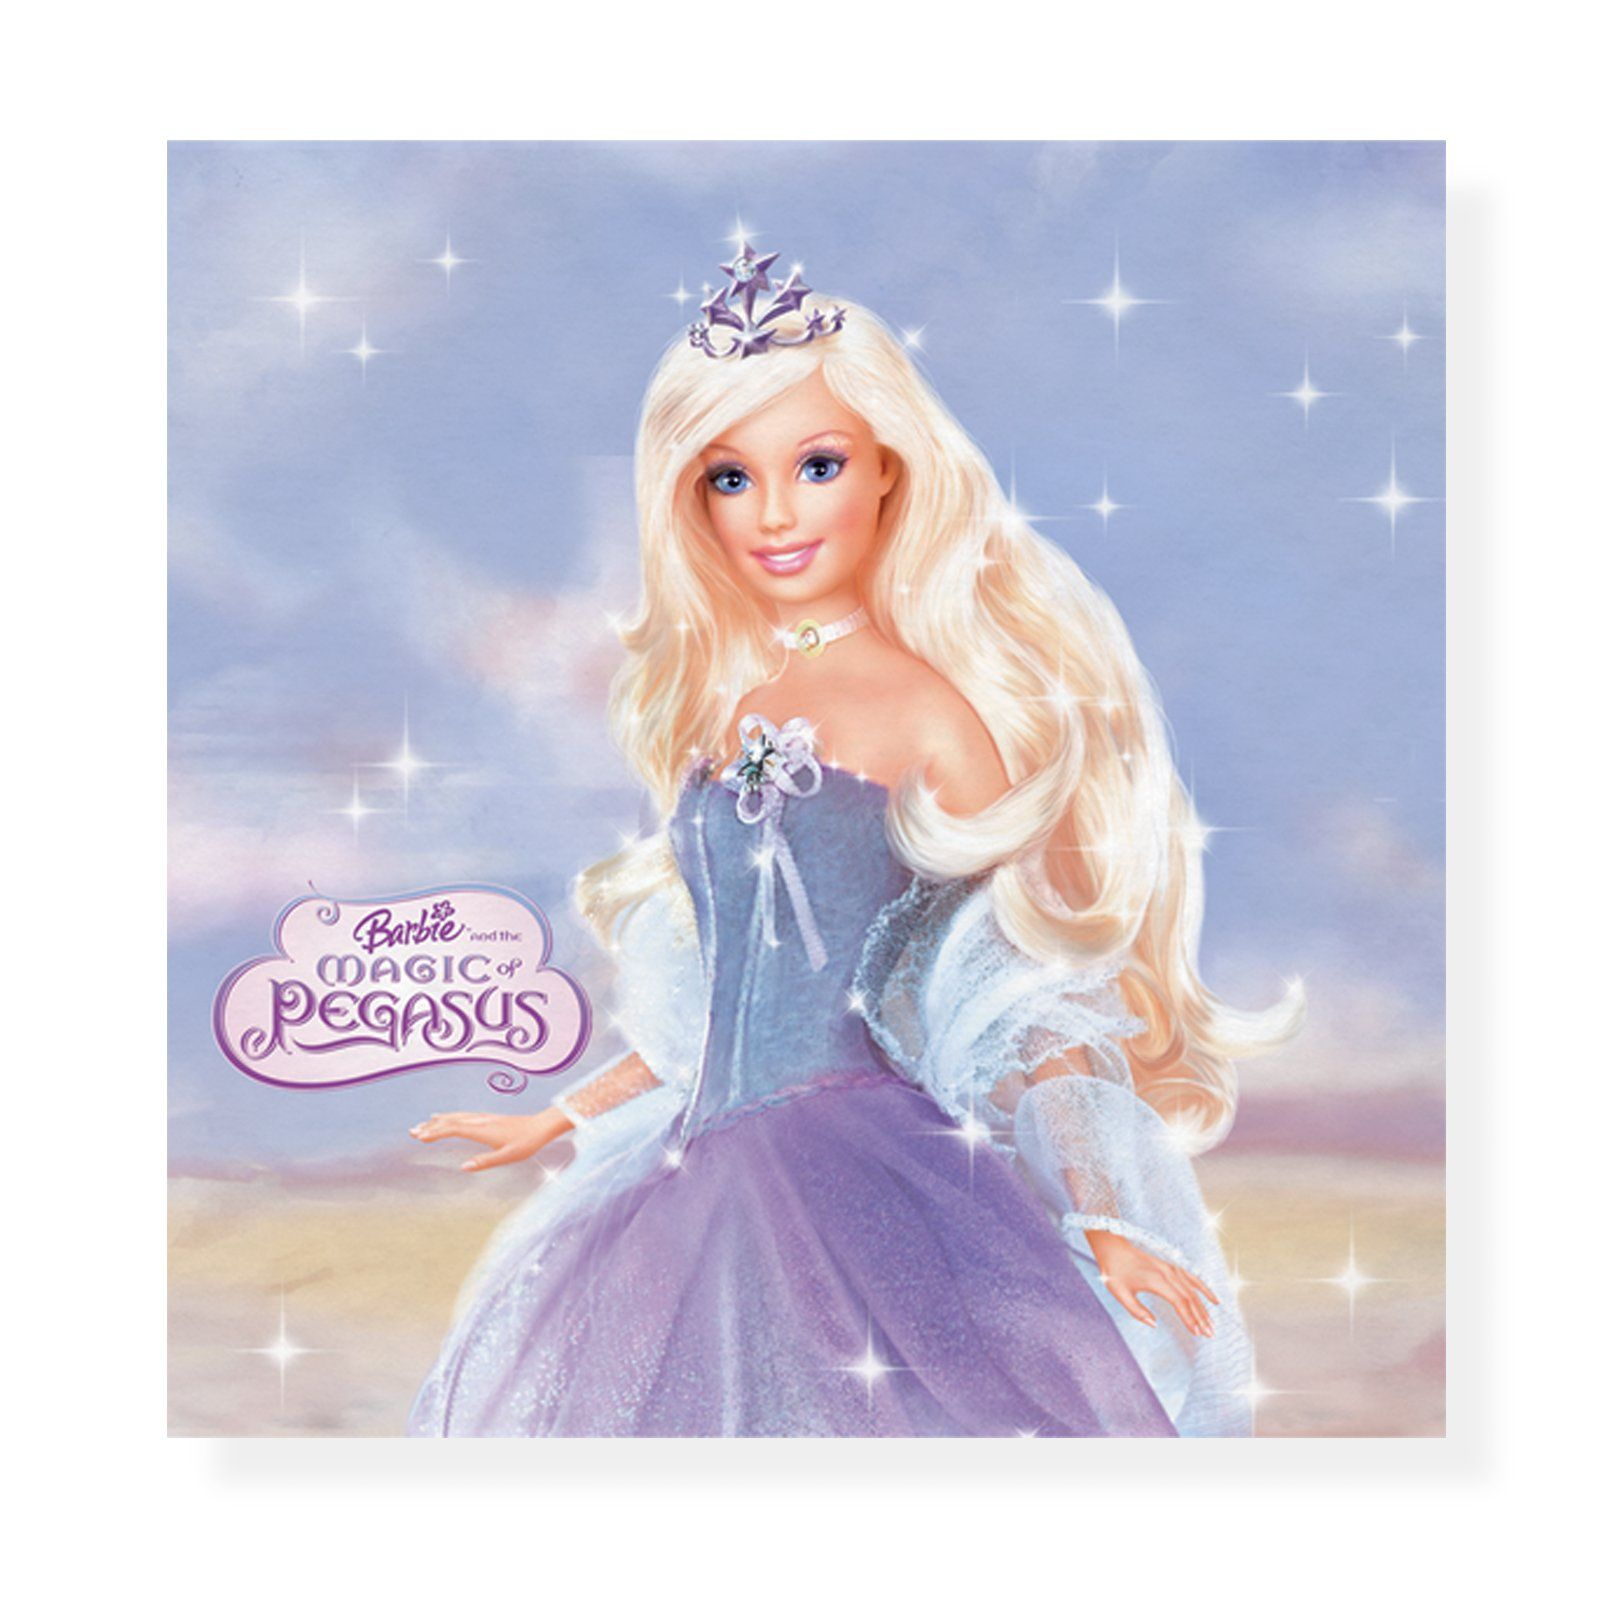 Barbie cartoon barbie and the magic of pegasus everything about barbie cartoon barbie and the magic of pegasus everything about cartoons voltagebd Image collections